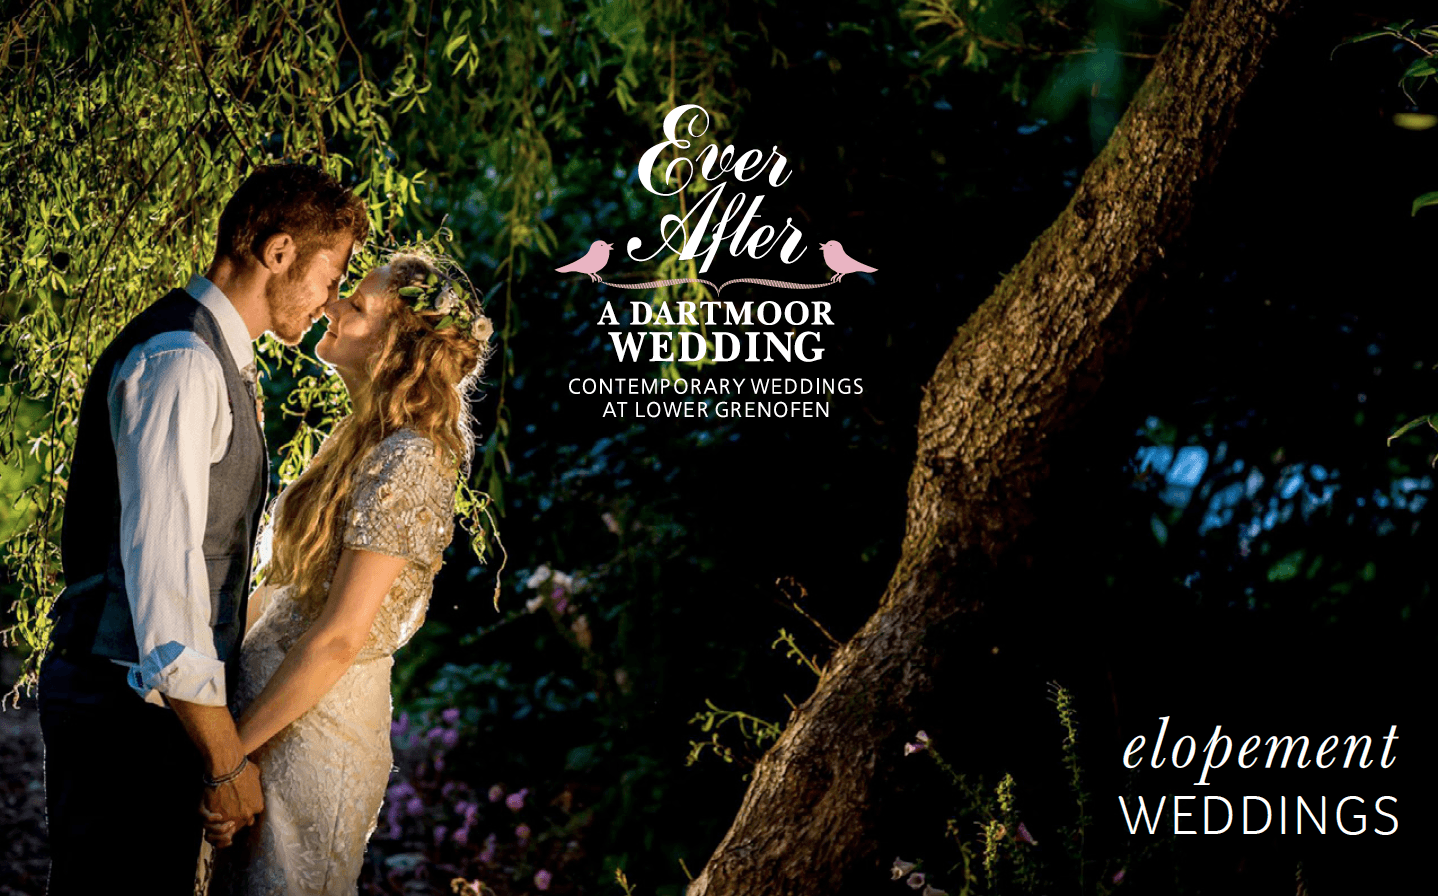 Launch of our new winter elopement wedding offer for 2015…